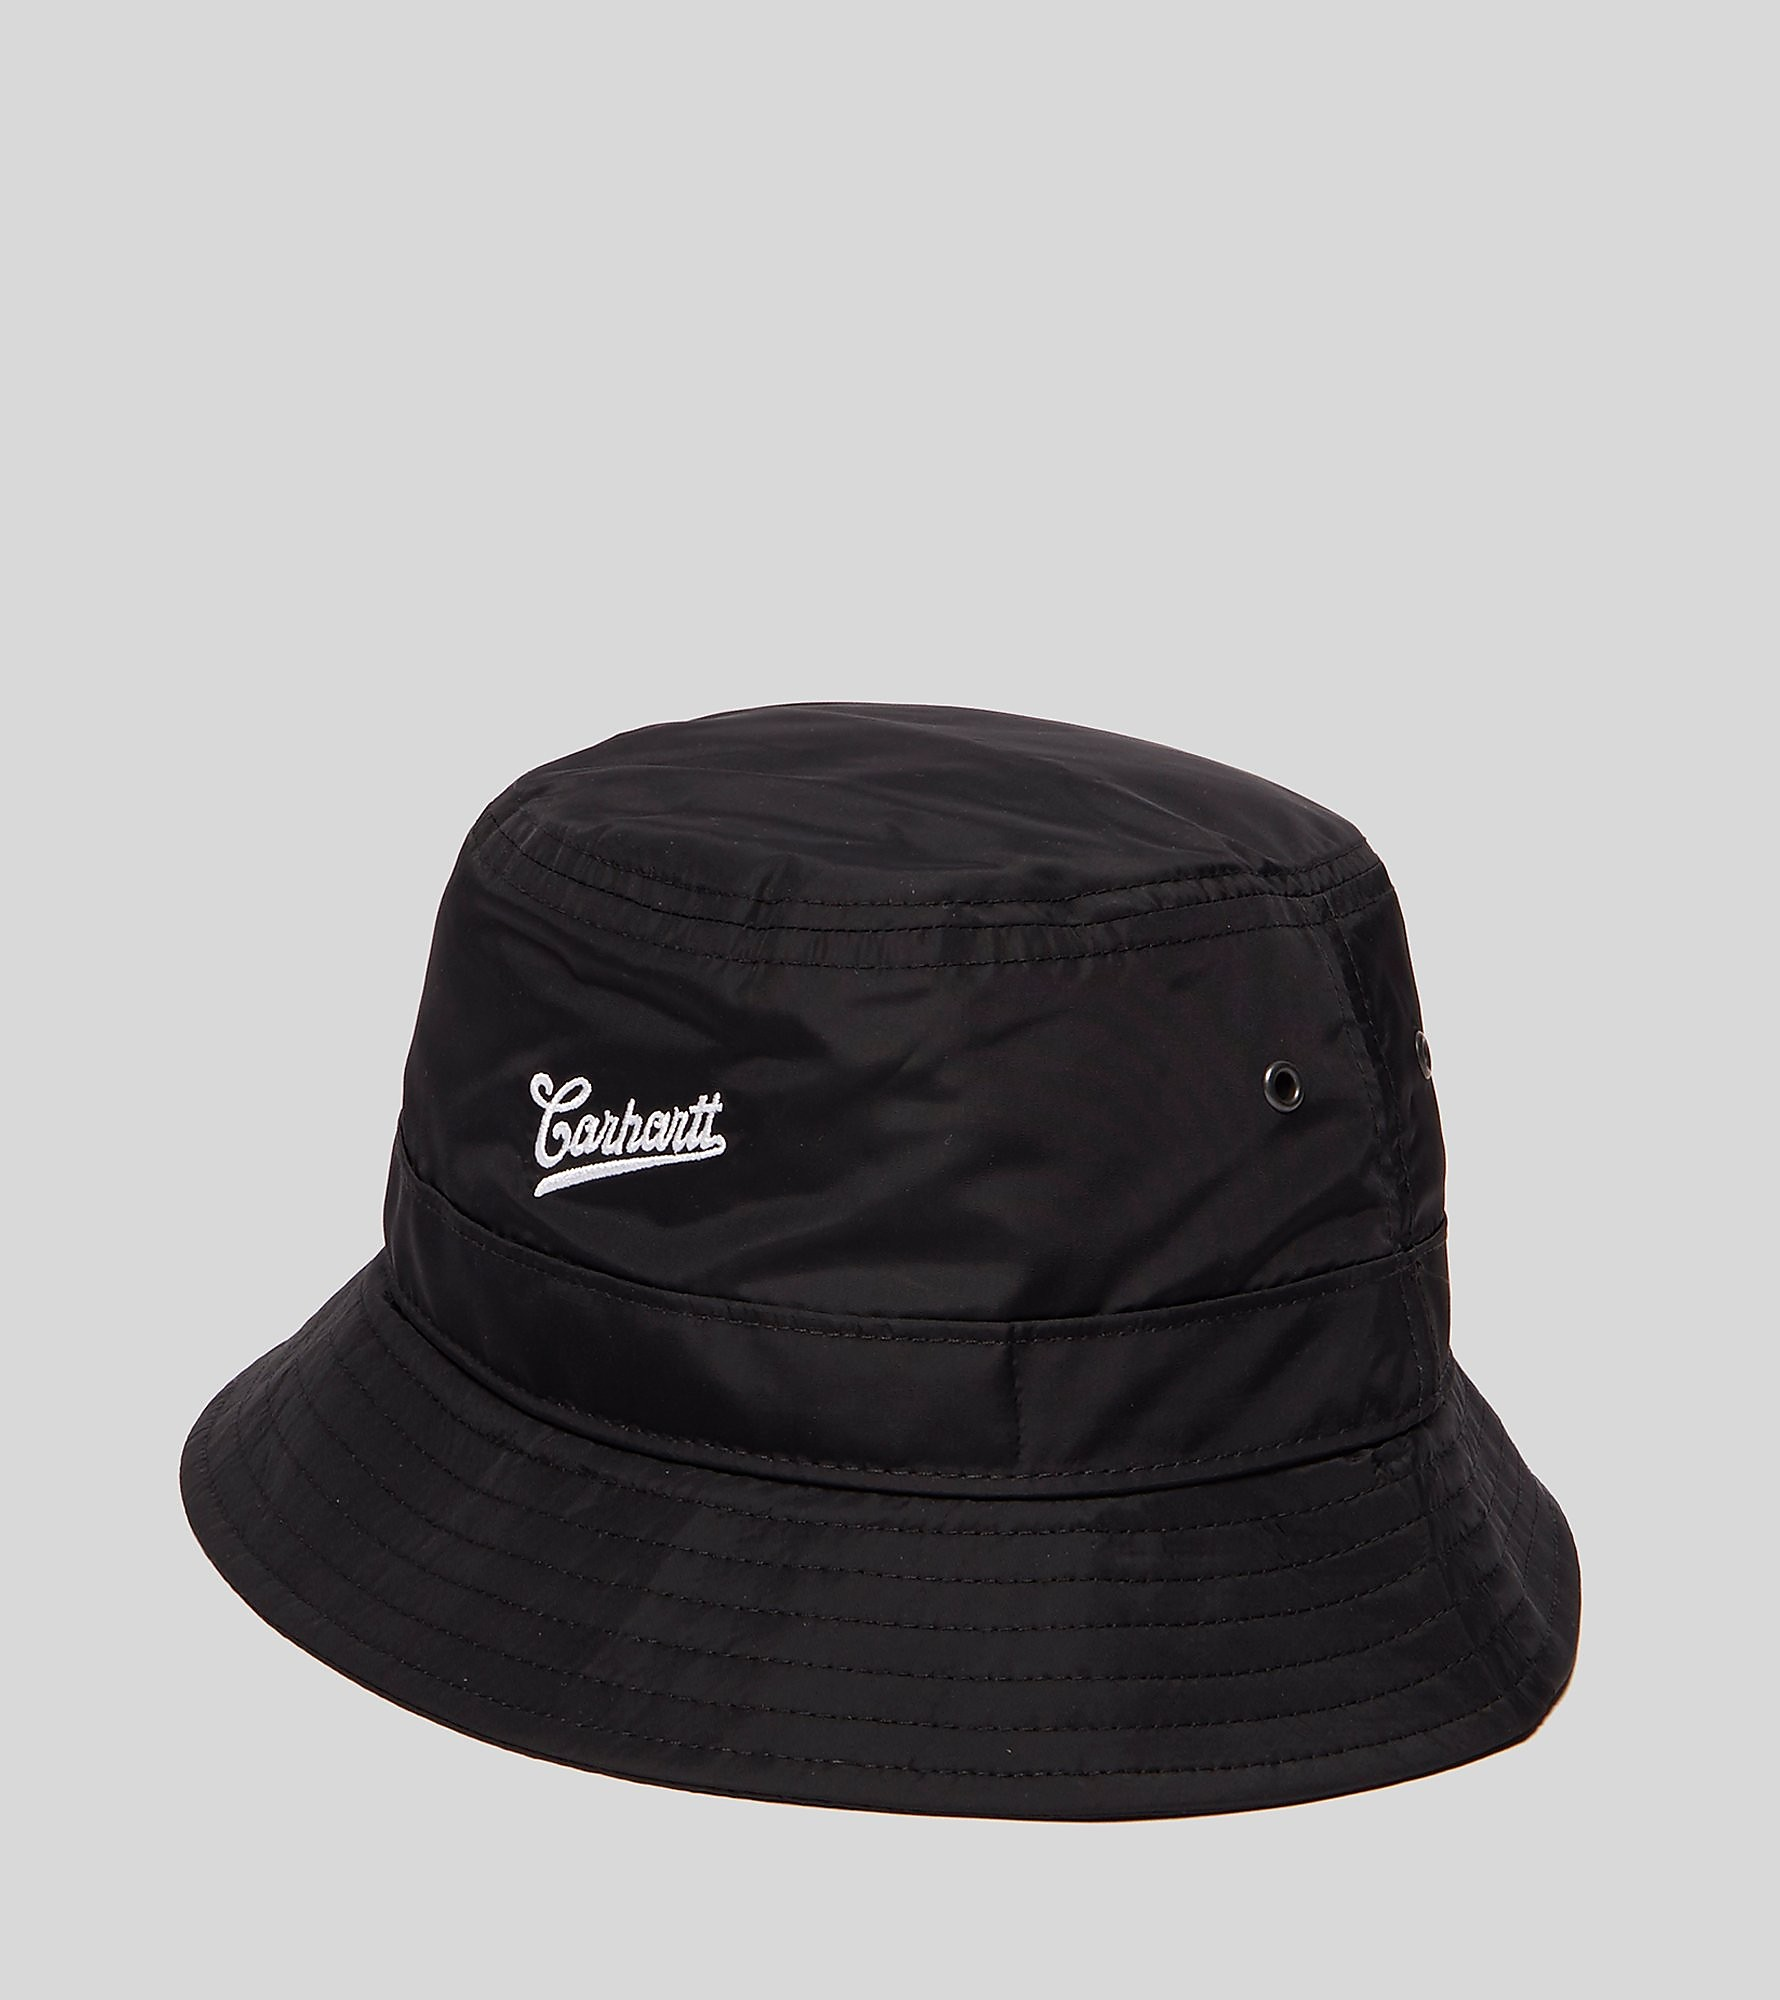 Carhartt WIP Strike Bucket Hat